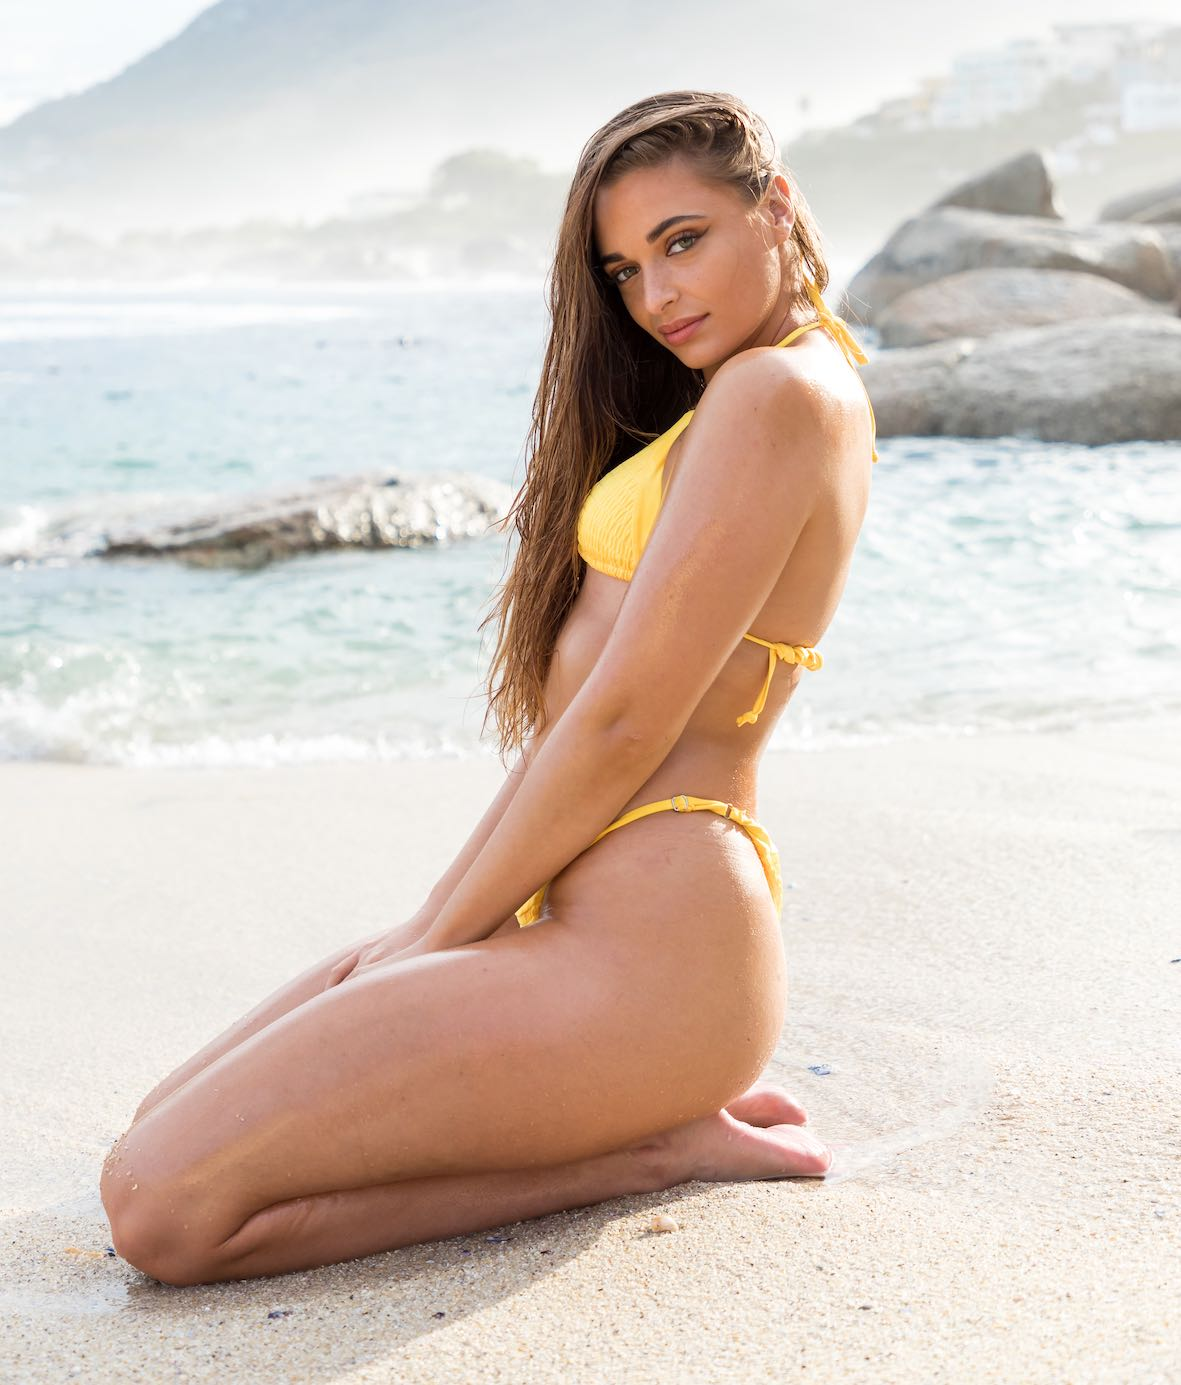 Our South African Girls feature with Mia le Roux